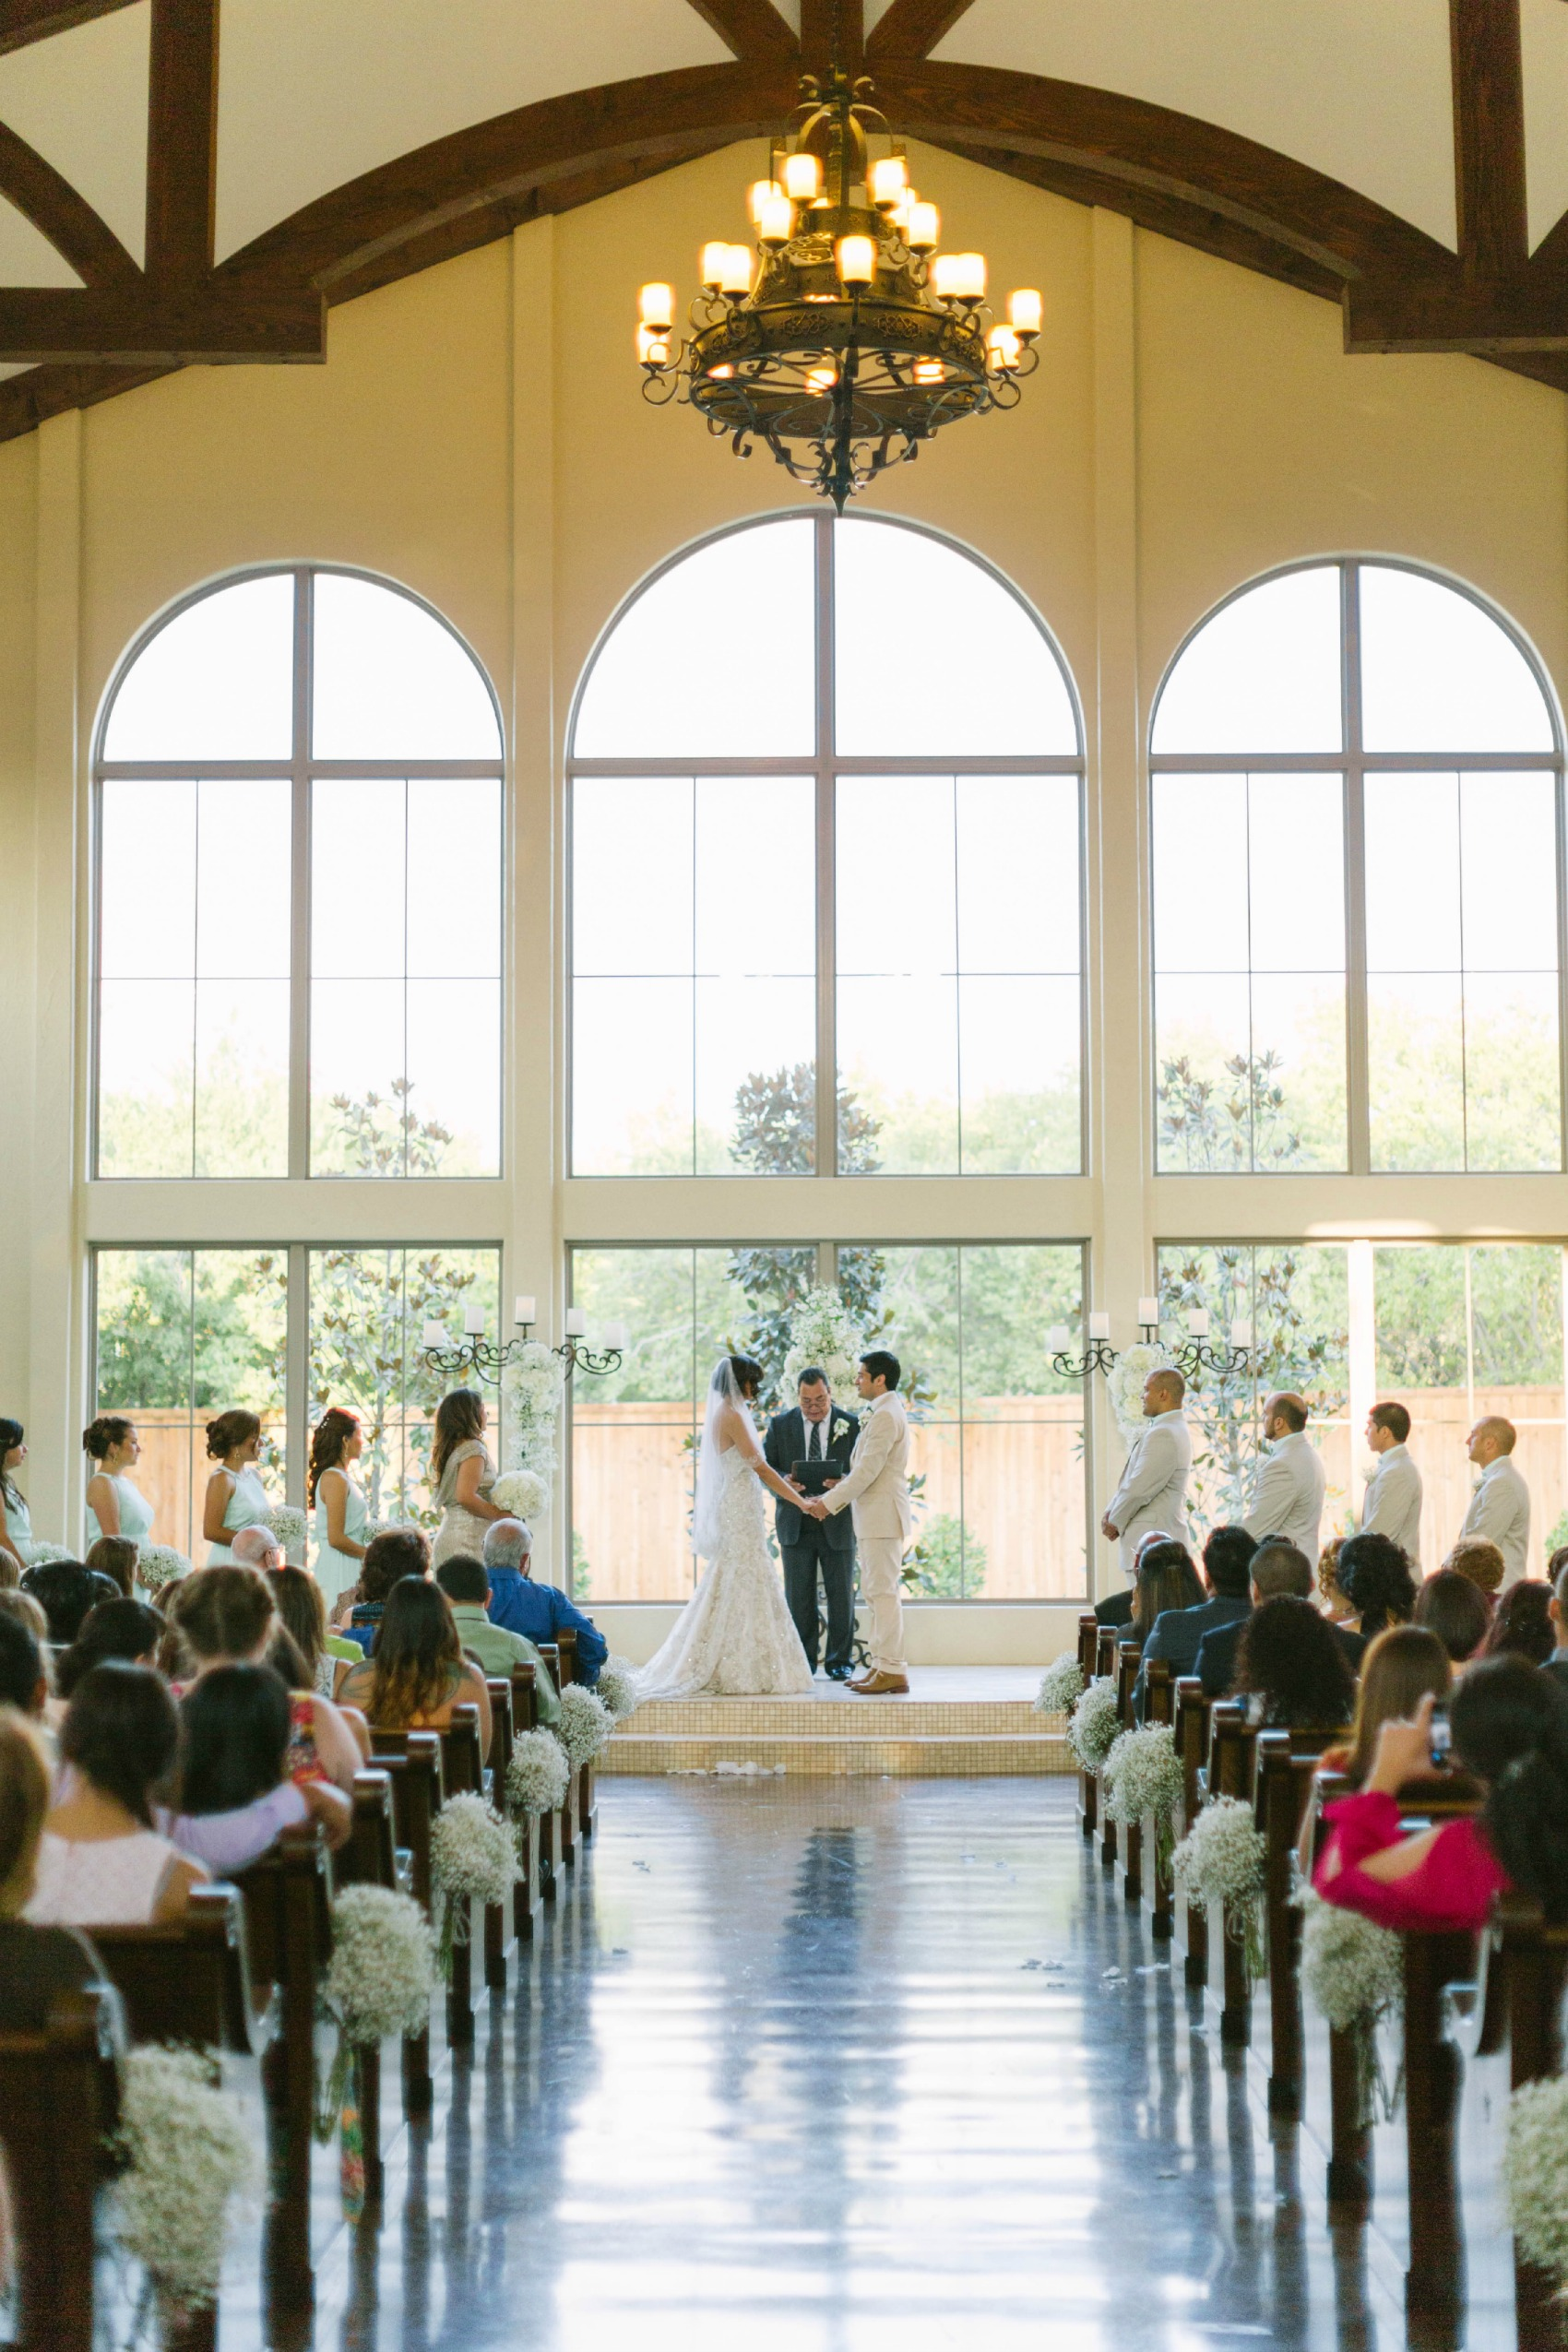 What Are Customers Are Saying Dallas And Fort Worth Wedding Venues DFW Wedding Venues